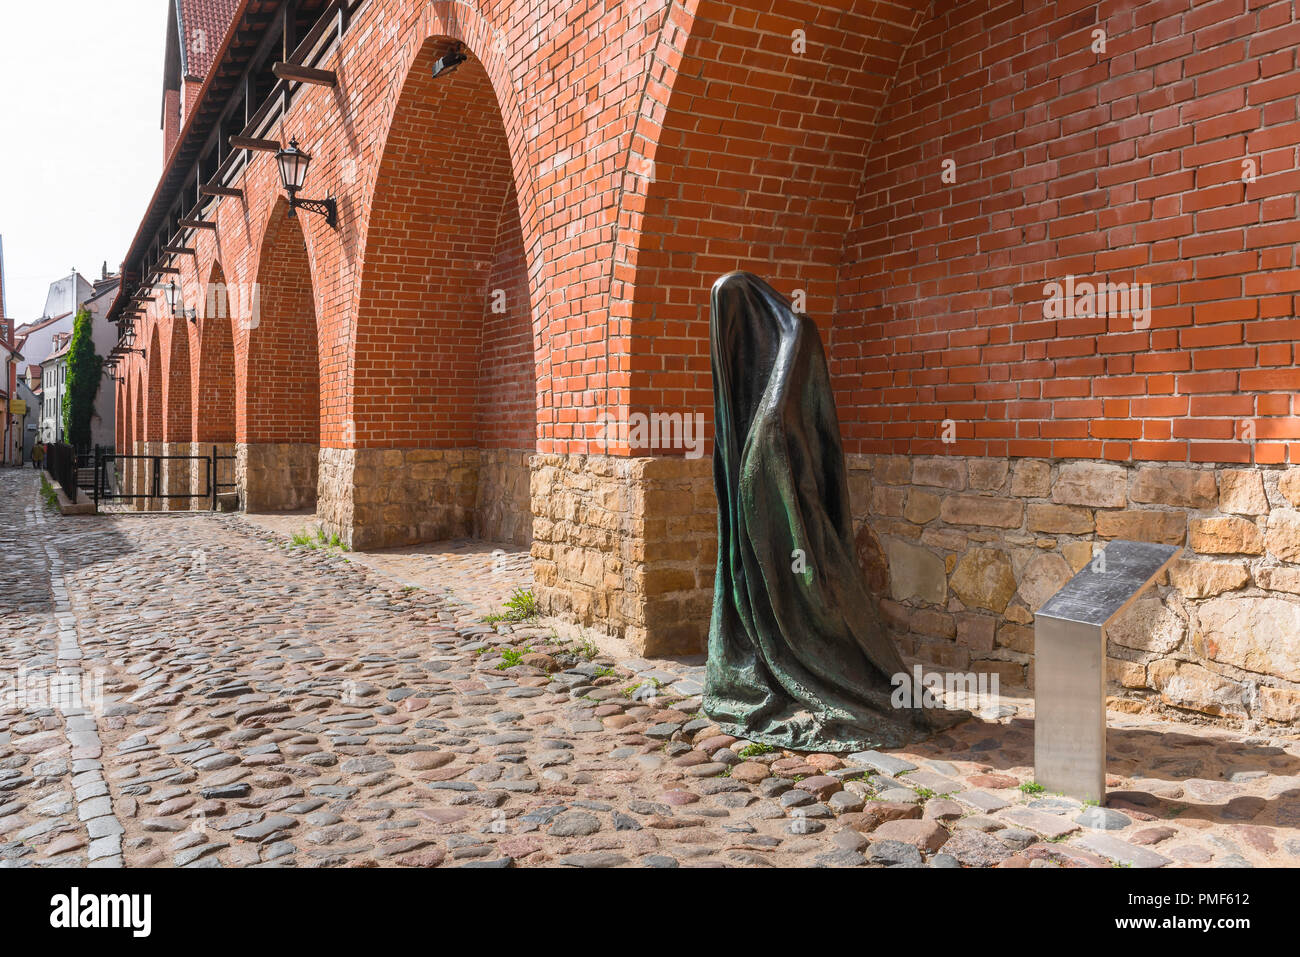 Old Riga city wall, view of the medieval city wall in Troksnu Iela including a modern sculpture titled The Ghost, Riga, Latvia. - Stock Image